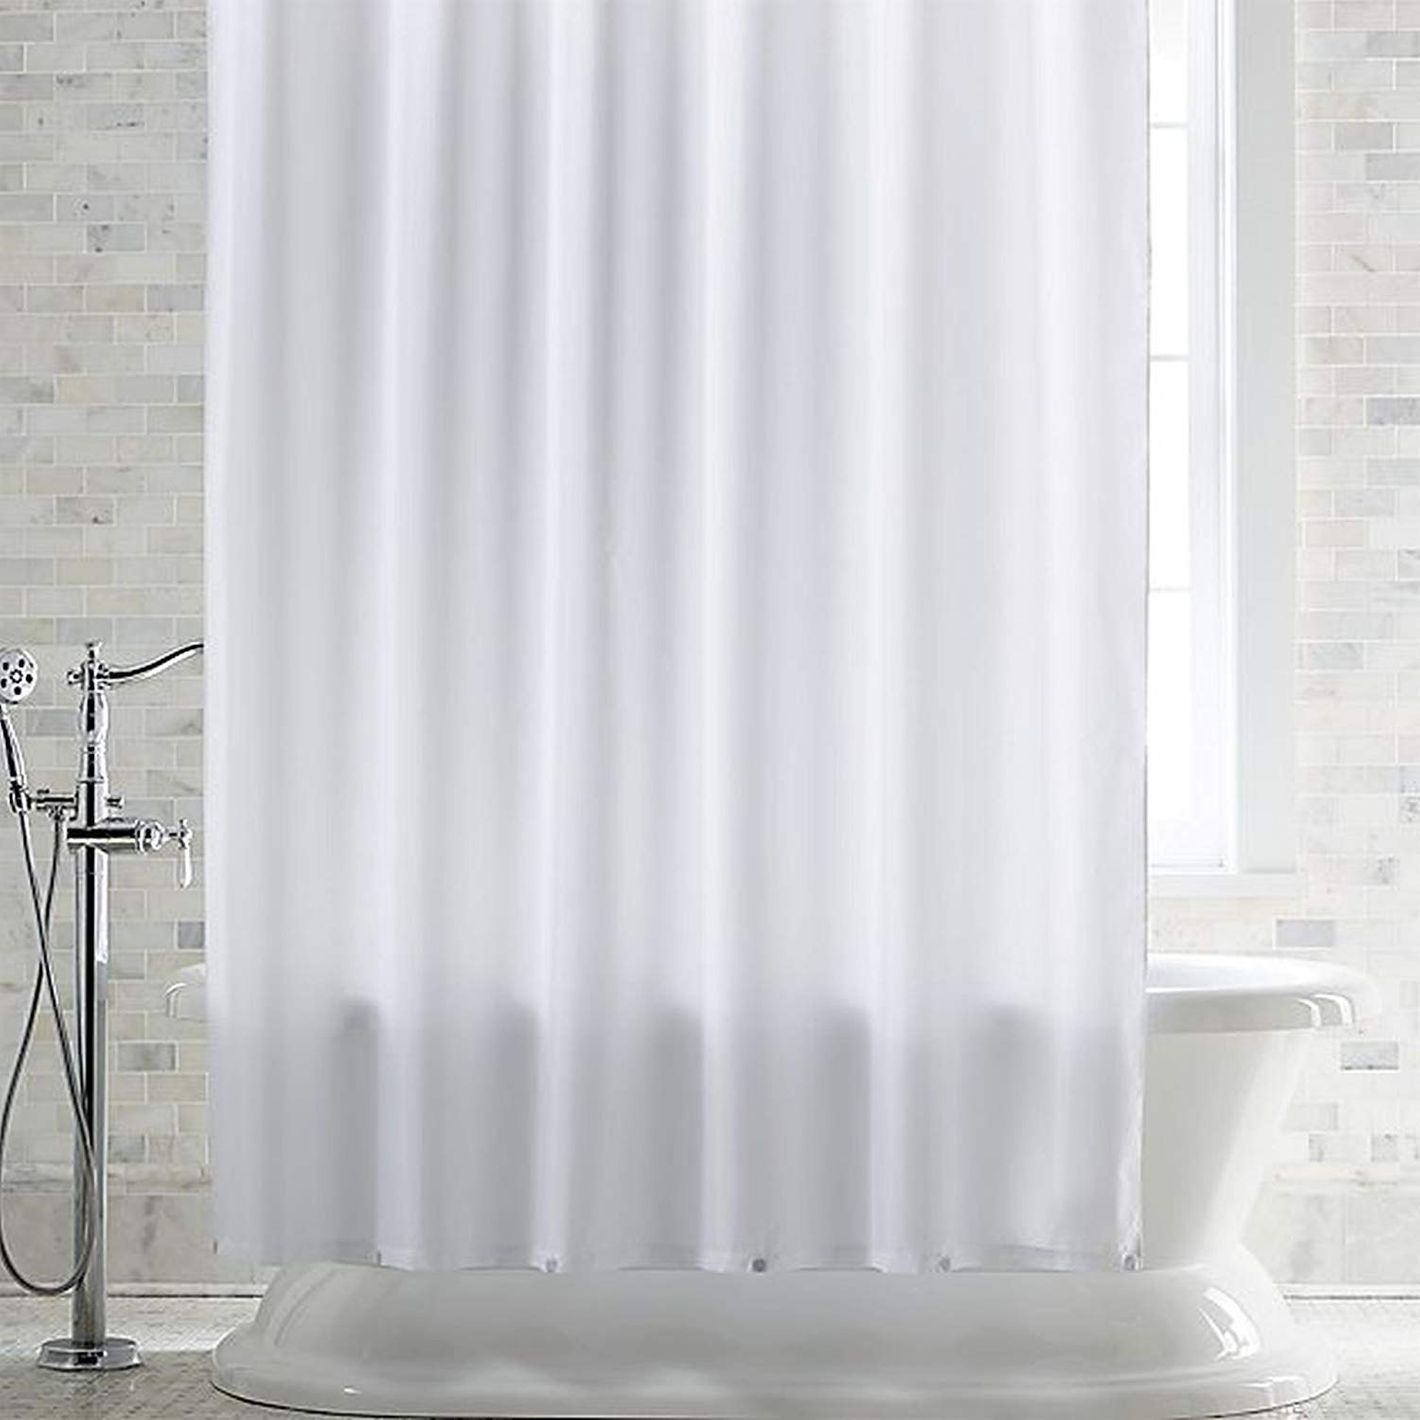 DeLaine's Frosted Shower Curtain Liner